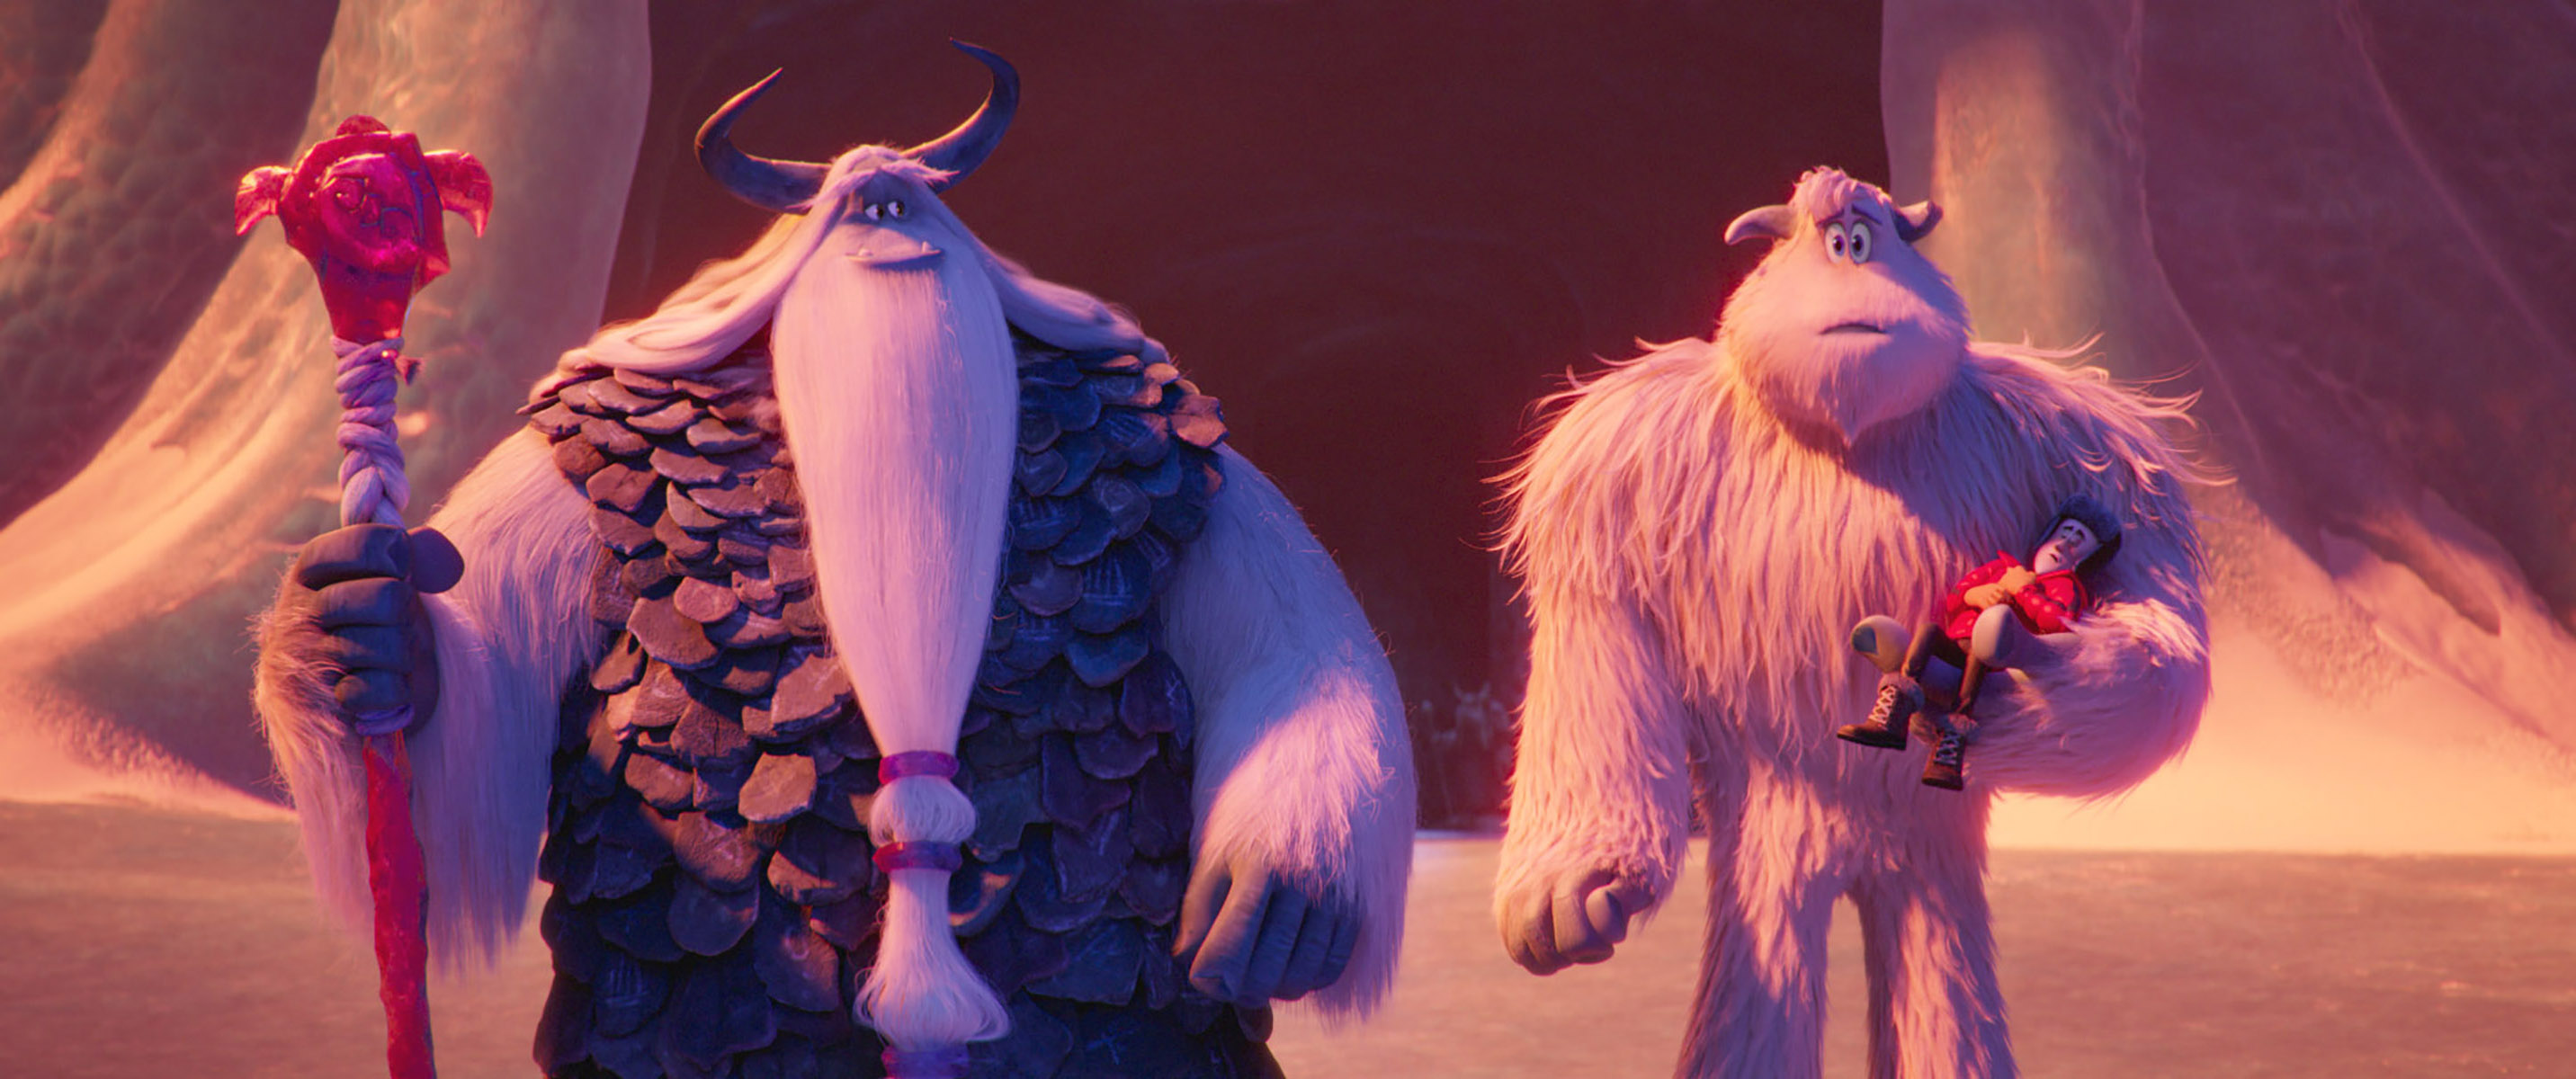 Smallfoot Gallery 9